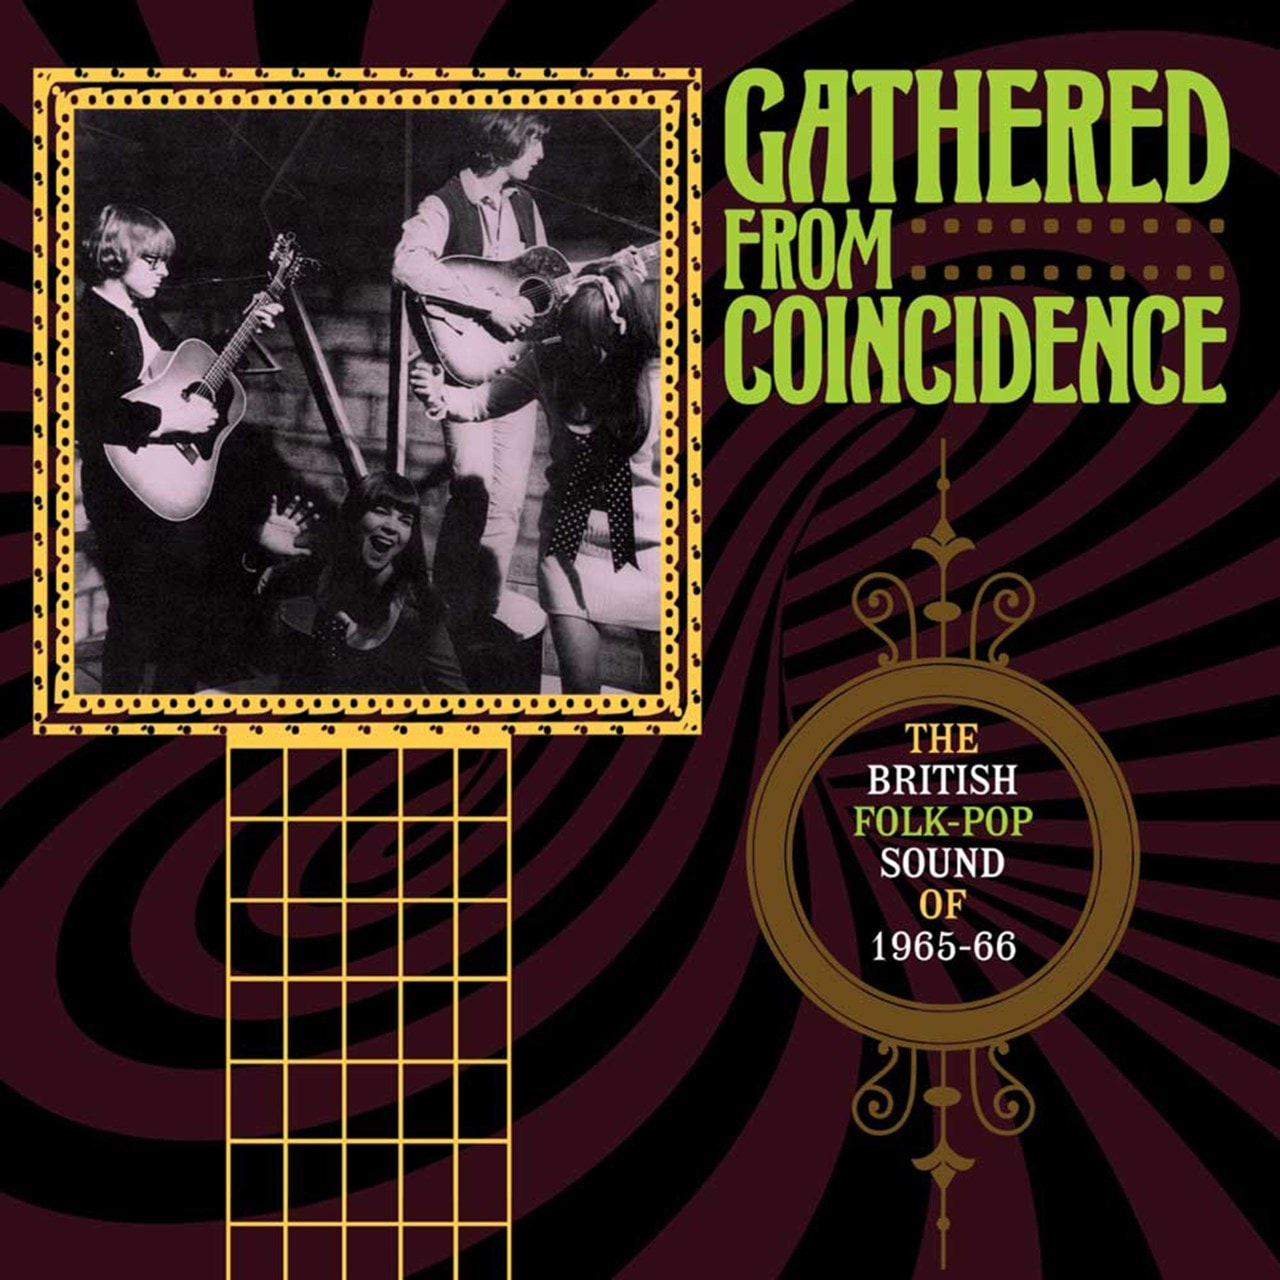 Gathered from Coincidence: The British Folk-pop Sound of 1965-66 - 1